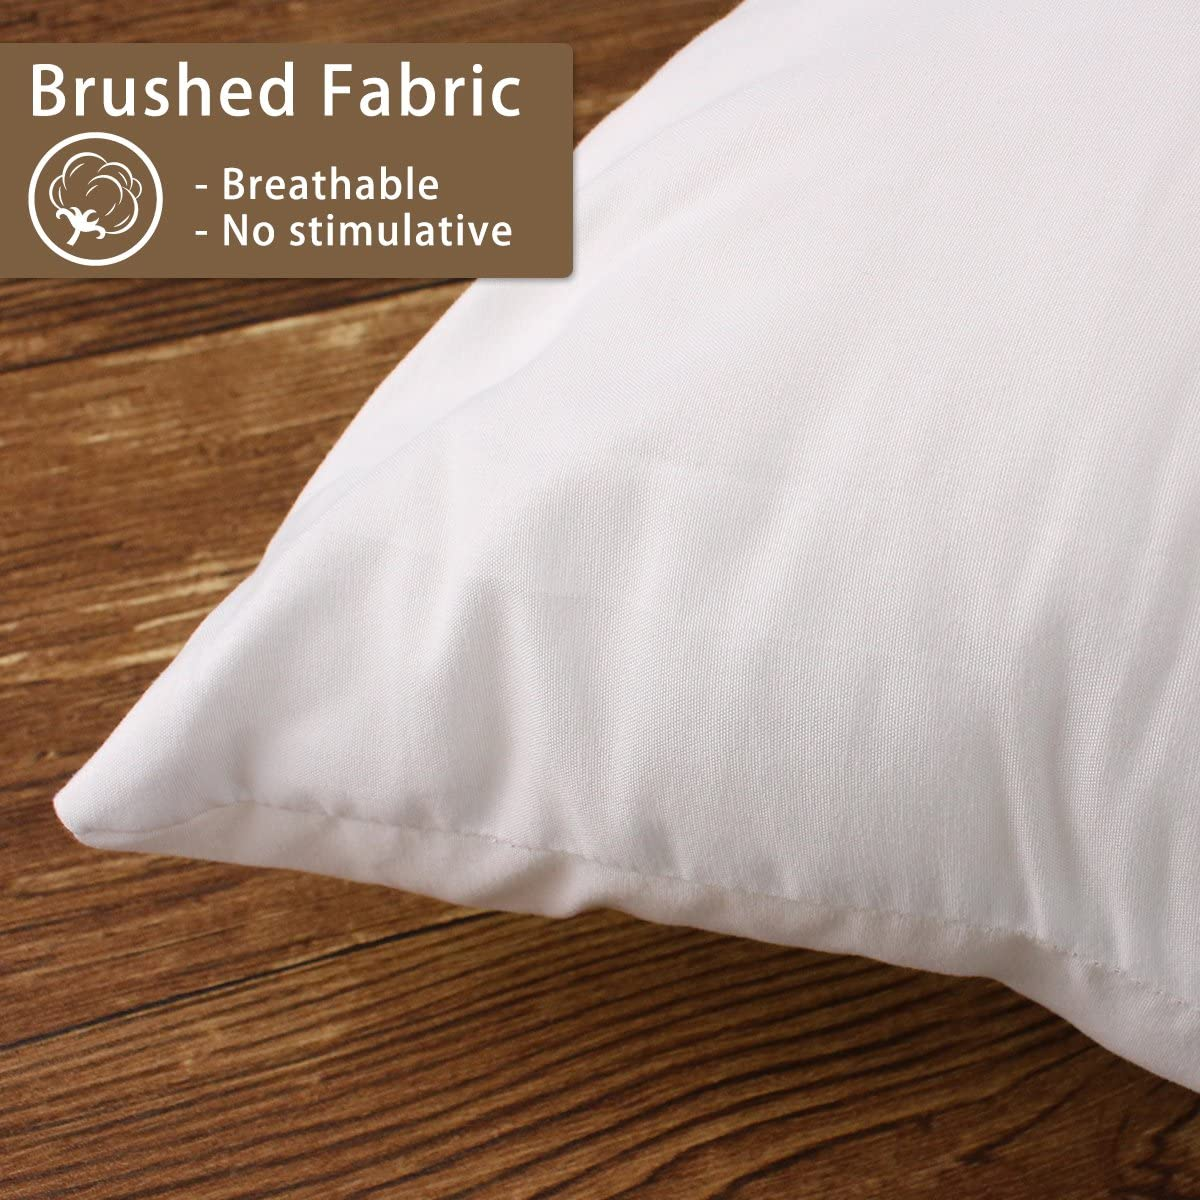 Hippih 18 X 18 Pillow Inserts Set Of 2 Hypoallergenic Decorative Square Pillow Form Insert With Zips White Amazon Ca Home Kitchen